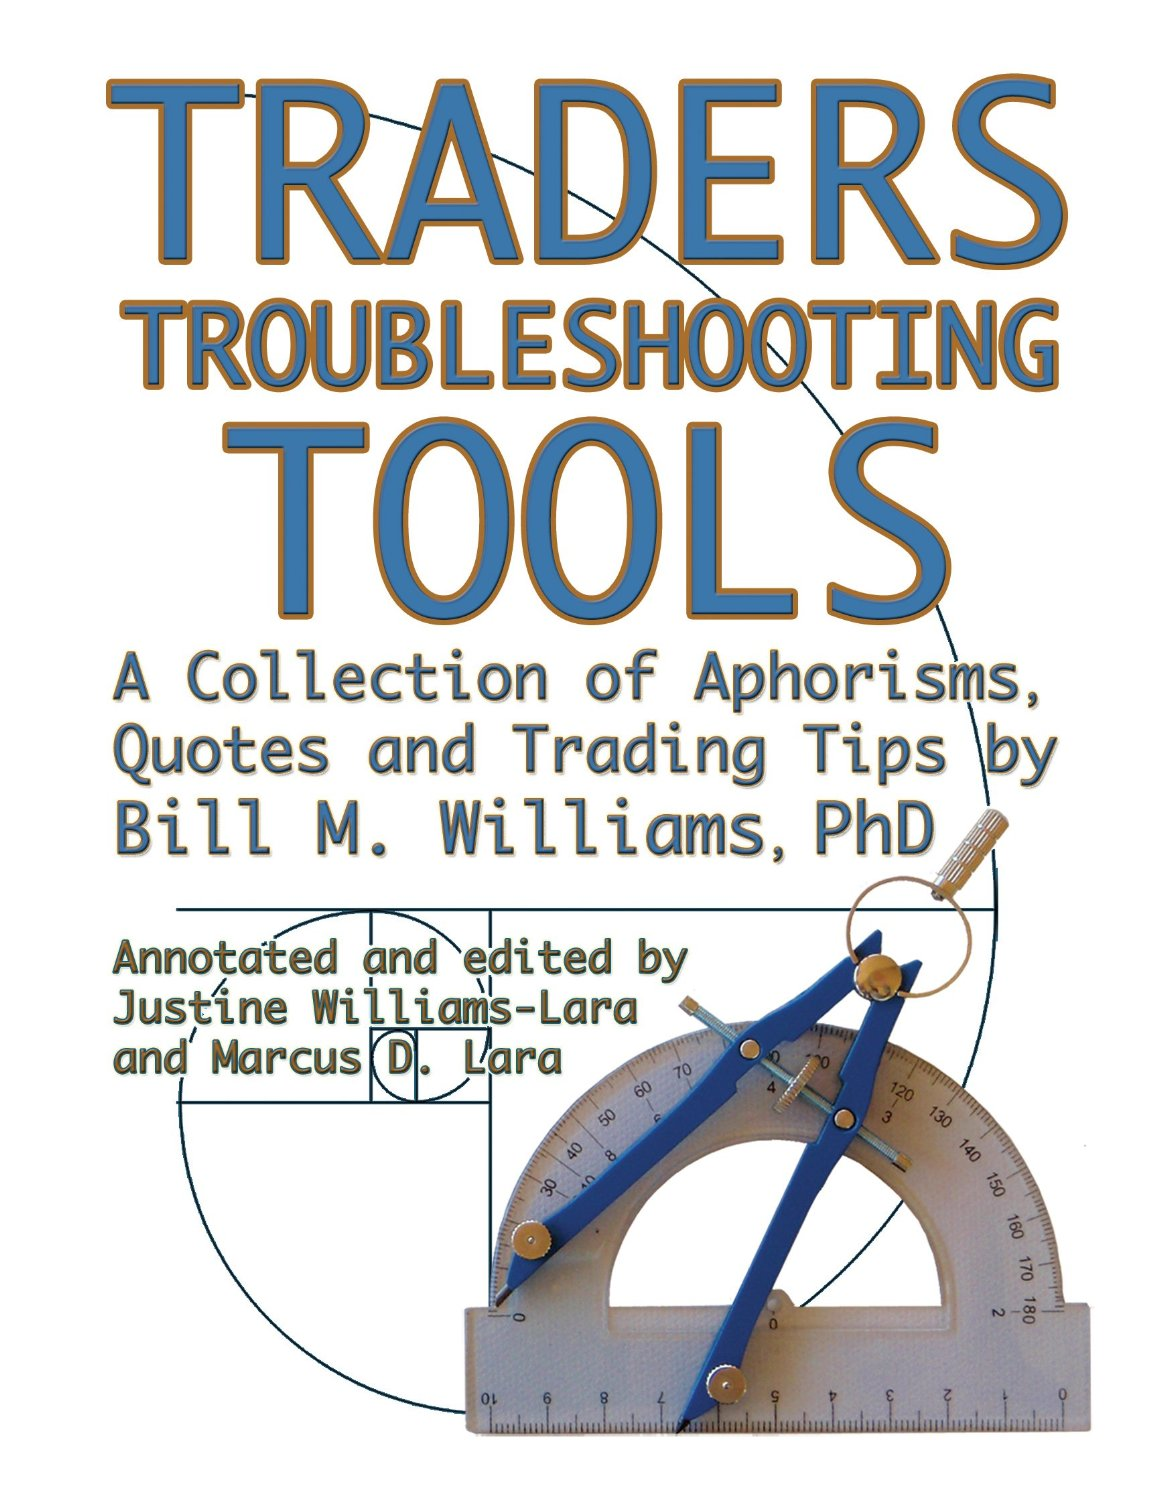 Traders Troubleshooting Tools - bill williams